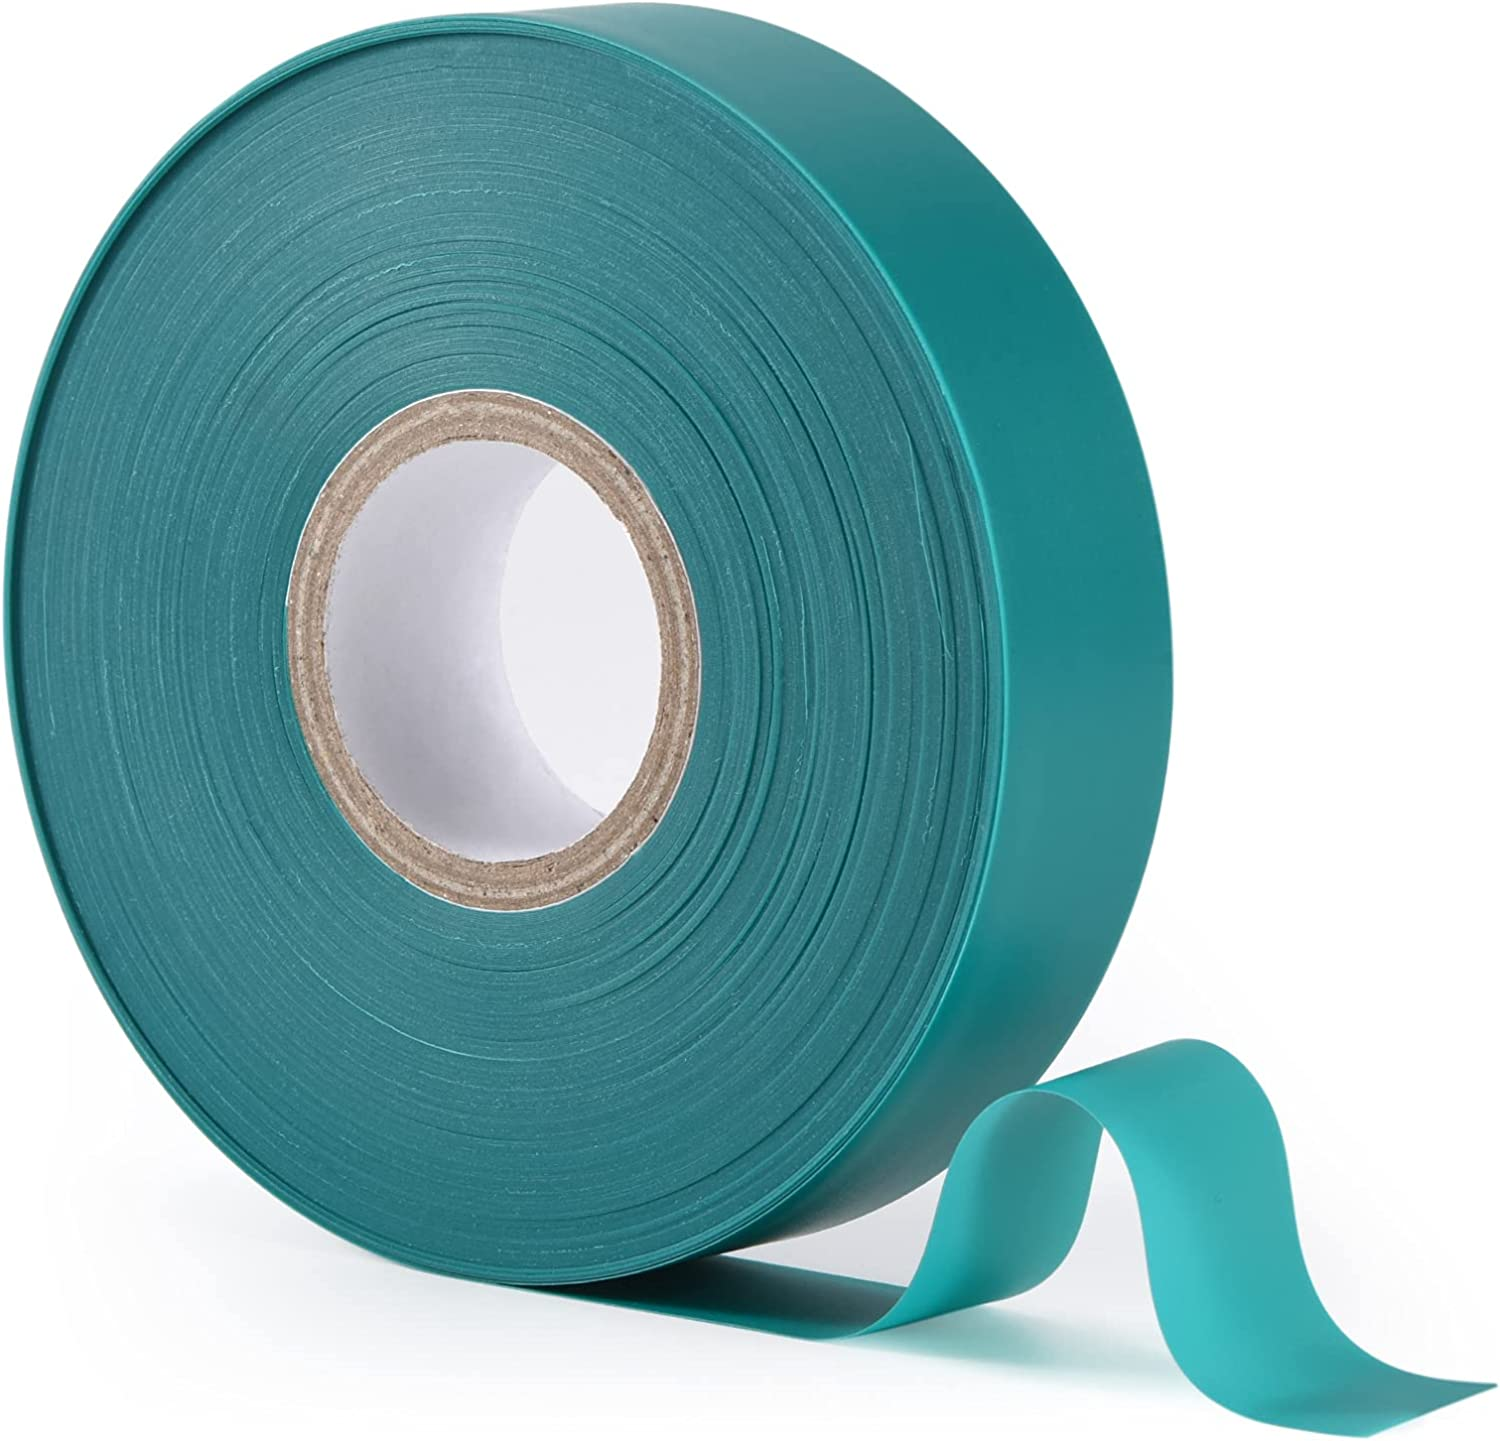 """TELENT OUTDOORS Stretch Tie Tape, 1"""" Wide 200FT Reusable Garden Plant Ties Green Tapes for Plants, Thick Garden Vinyl Stake Ribbon for Branches Flowers Tomatoes Indoor Outdoor Greenhouse"""